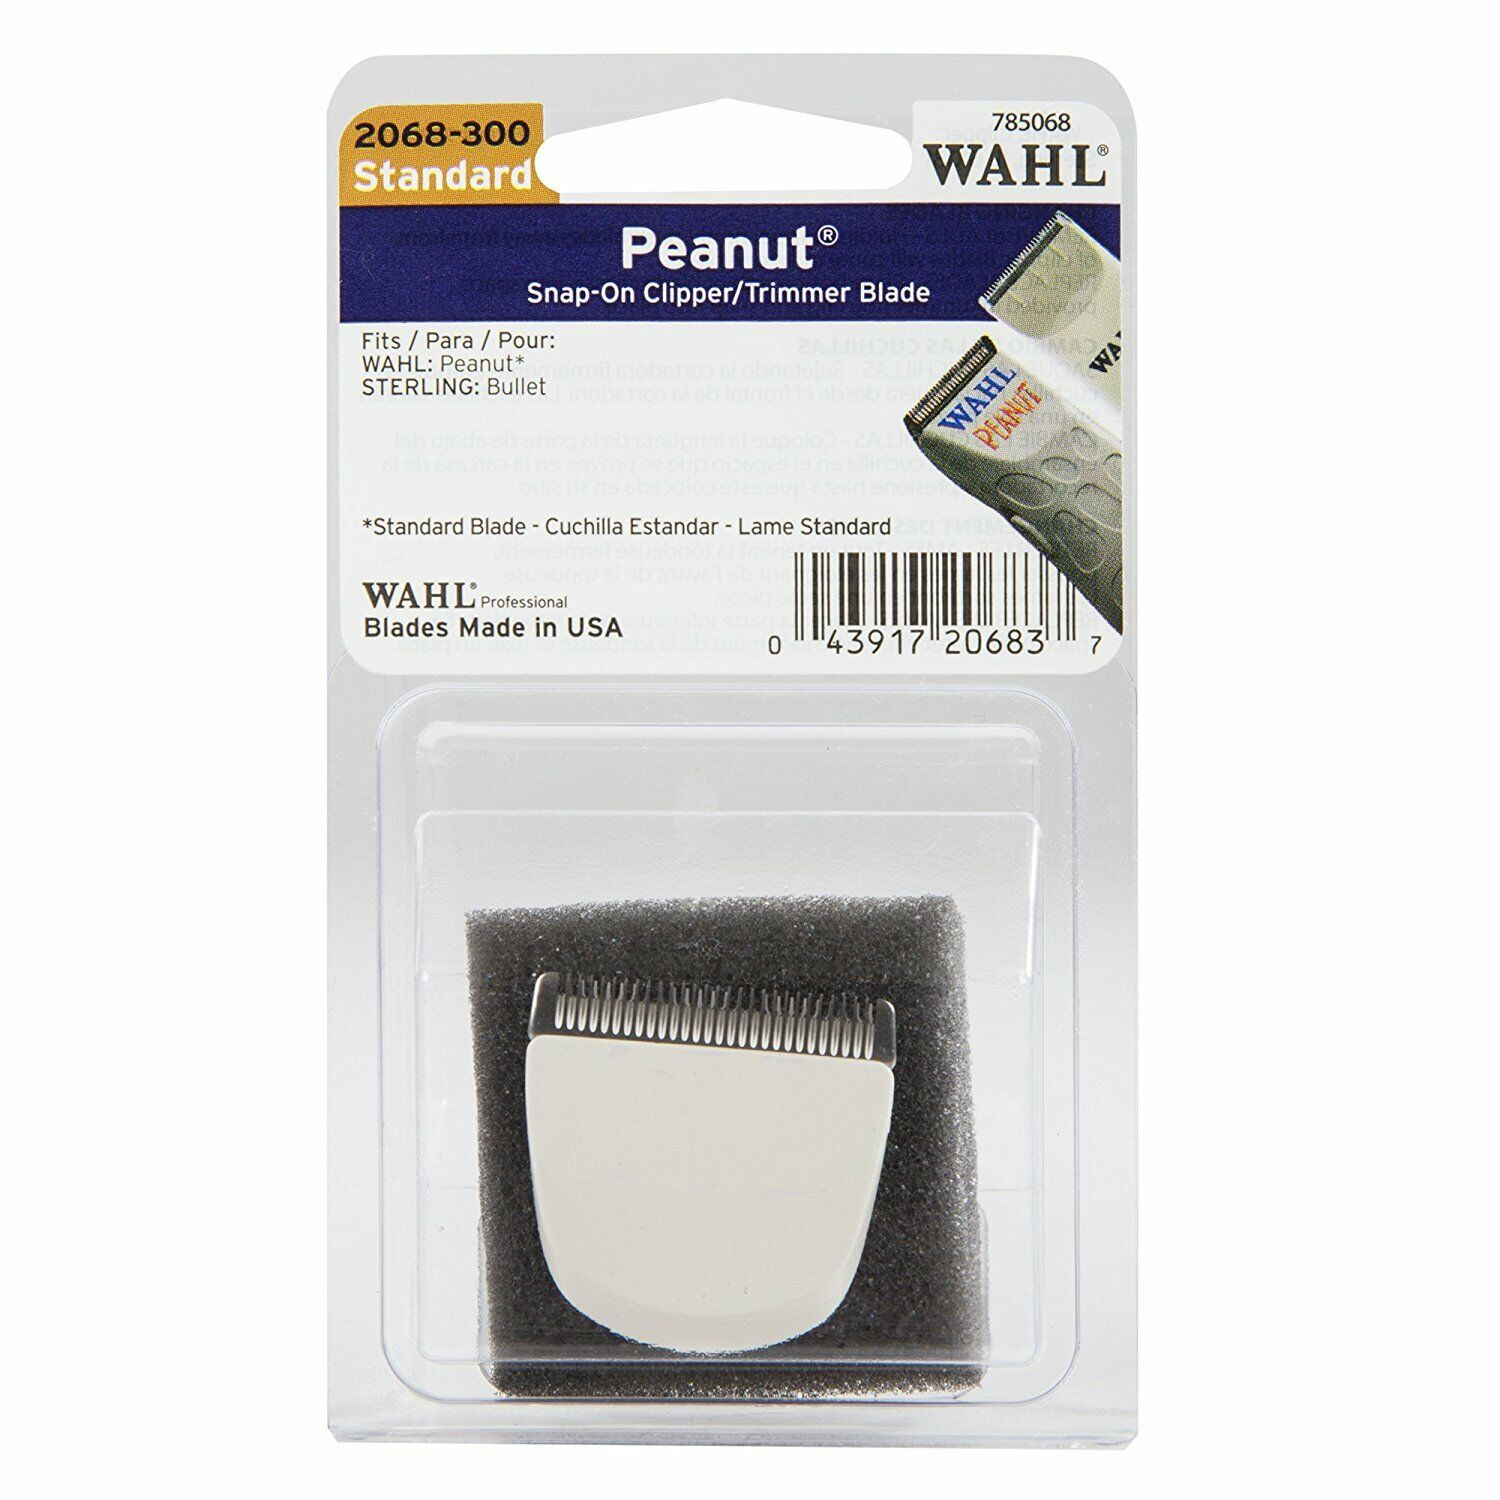 Wahl White Peanut Trimmer Snap On Replacement Blade #2068-